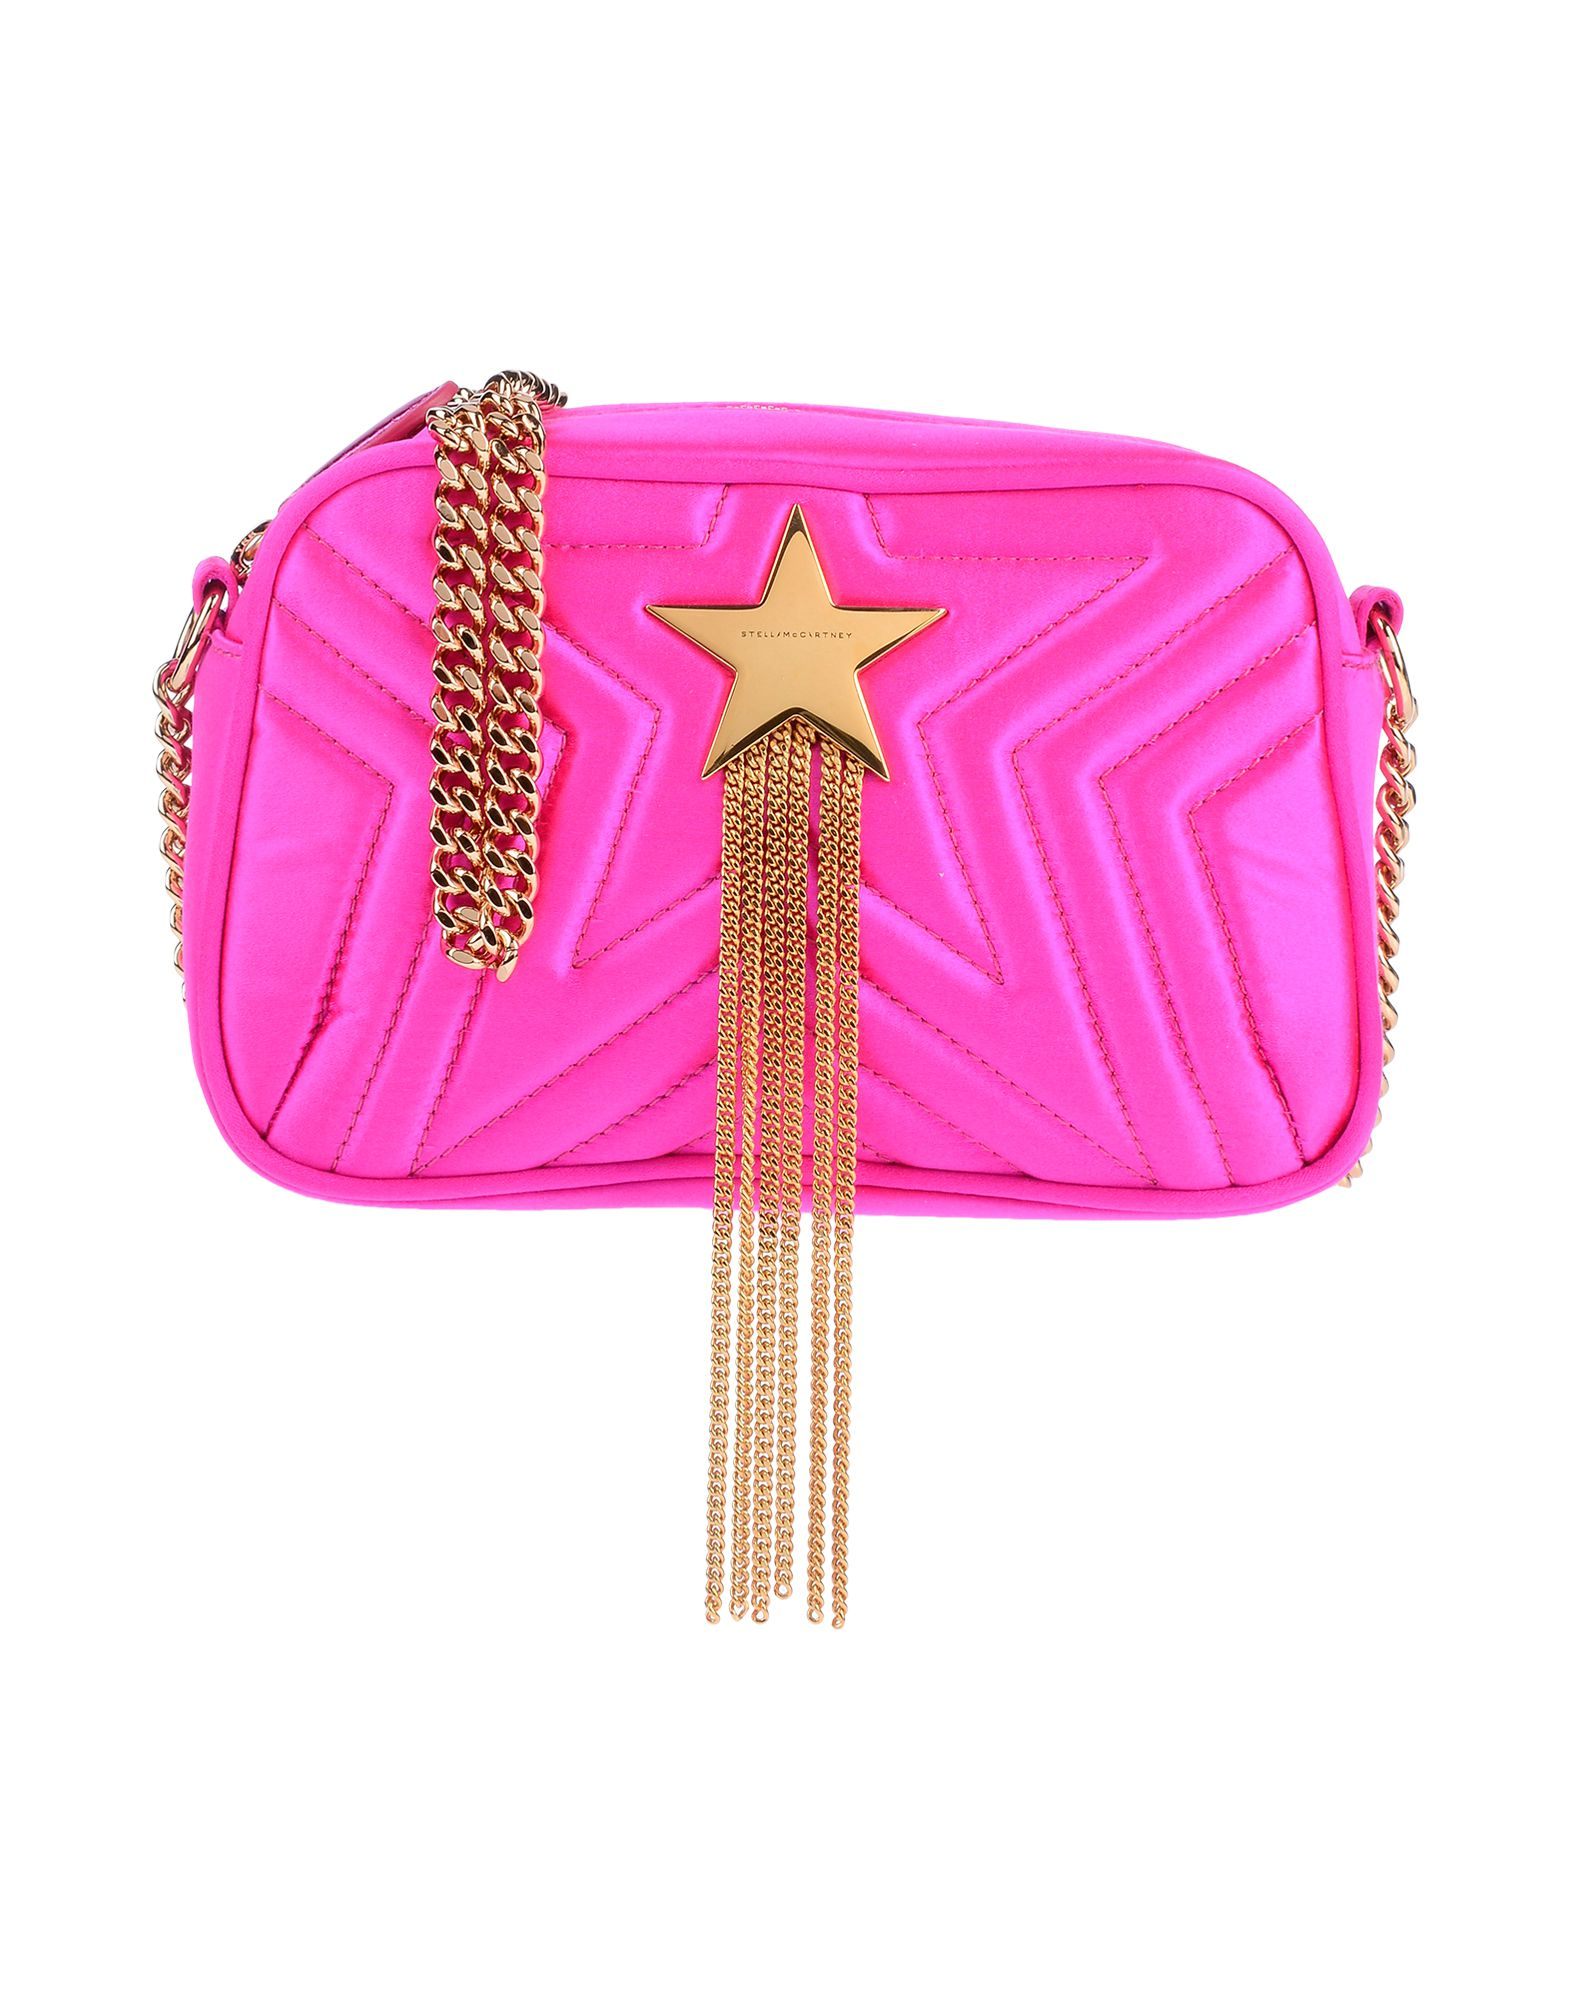 STELLA McCARTNEY Cross-body bags